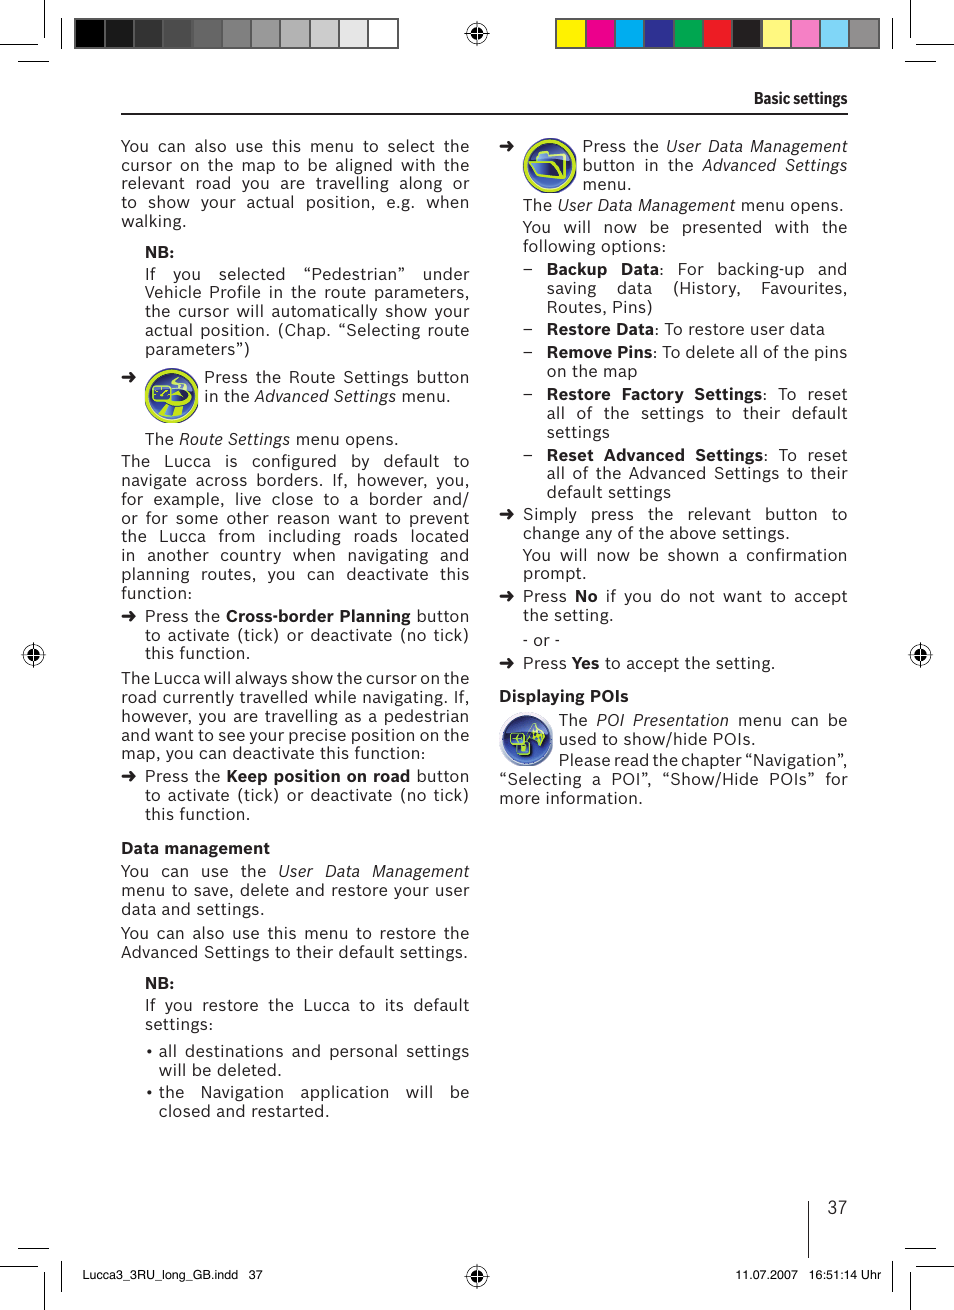 Blaupunkt TRAVELPILOT LUCCA 3 3 EE User Manual | Page 37 / 46